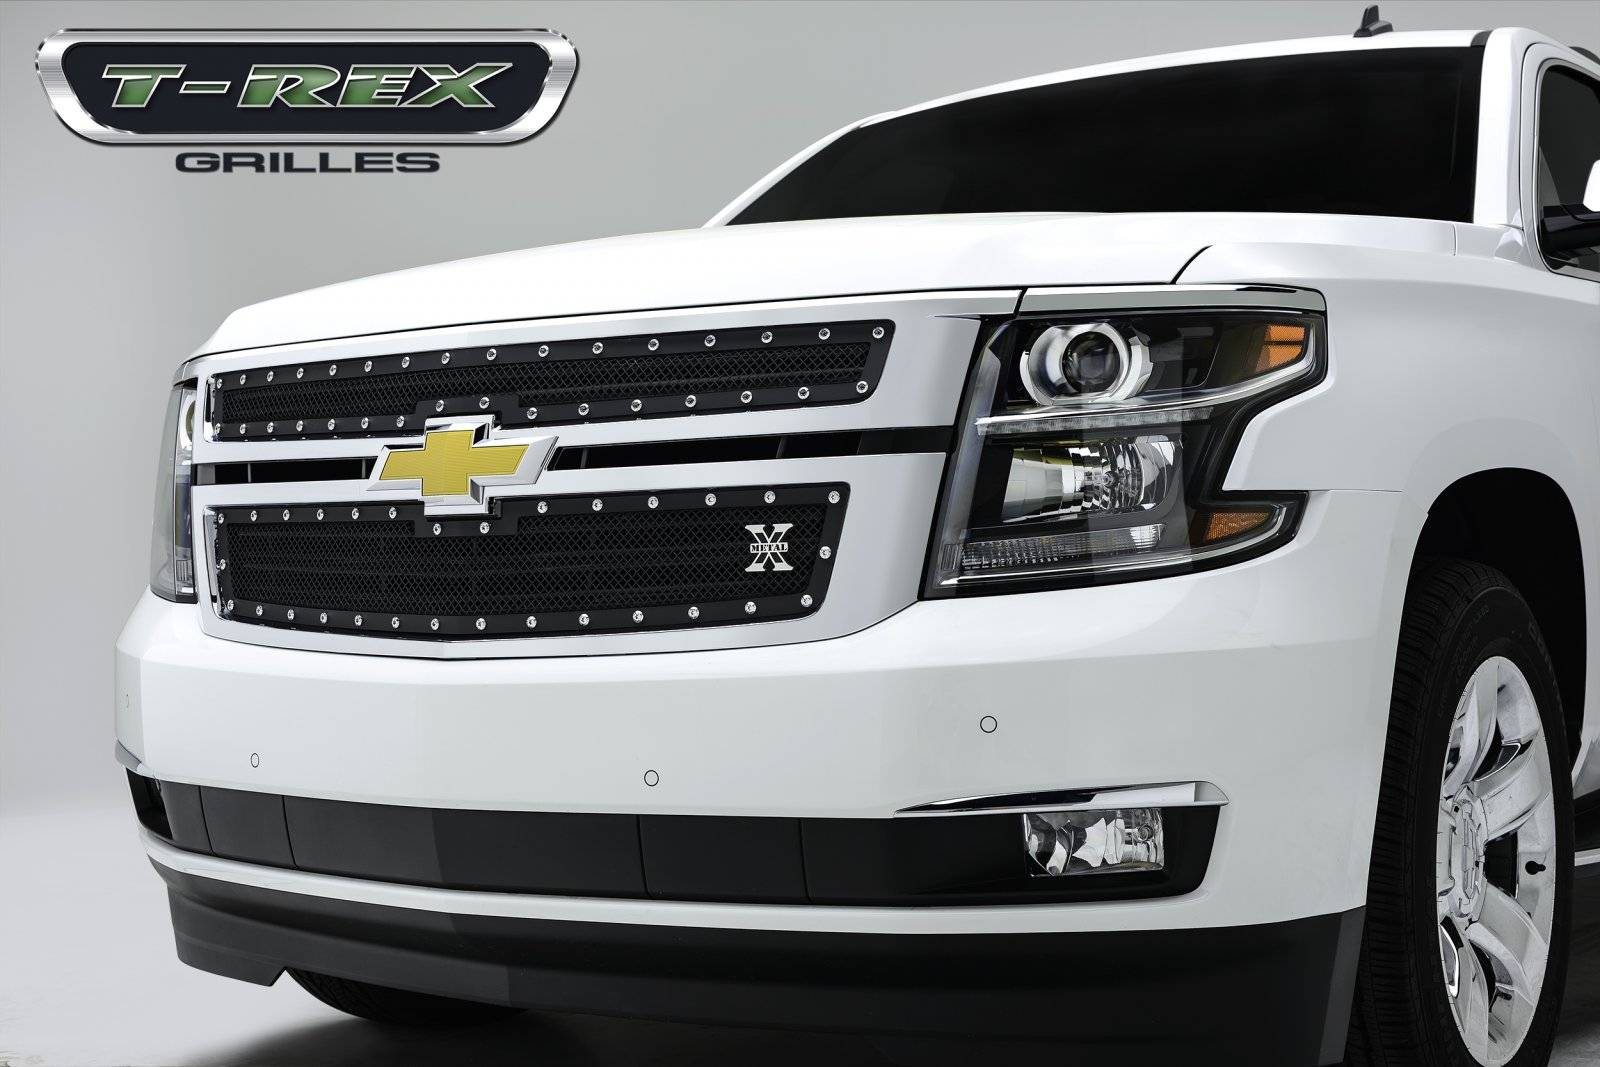 T-REX Grilles - 2015-2020 Suburban and Tahoe LT, LTZ X-Metal Grille, Black, 2 Pc, Overlay, Chrome Studs - PN #6710551